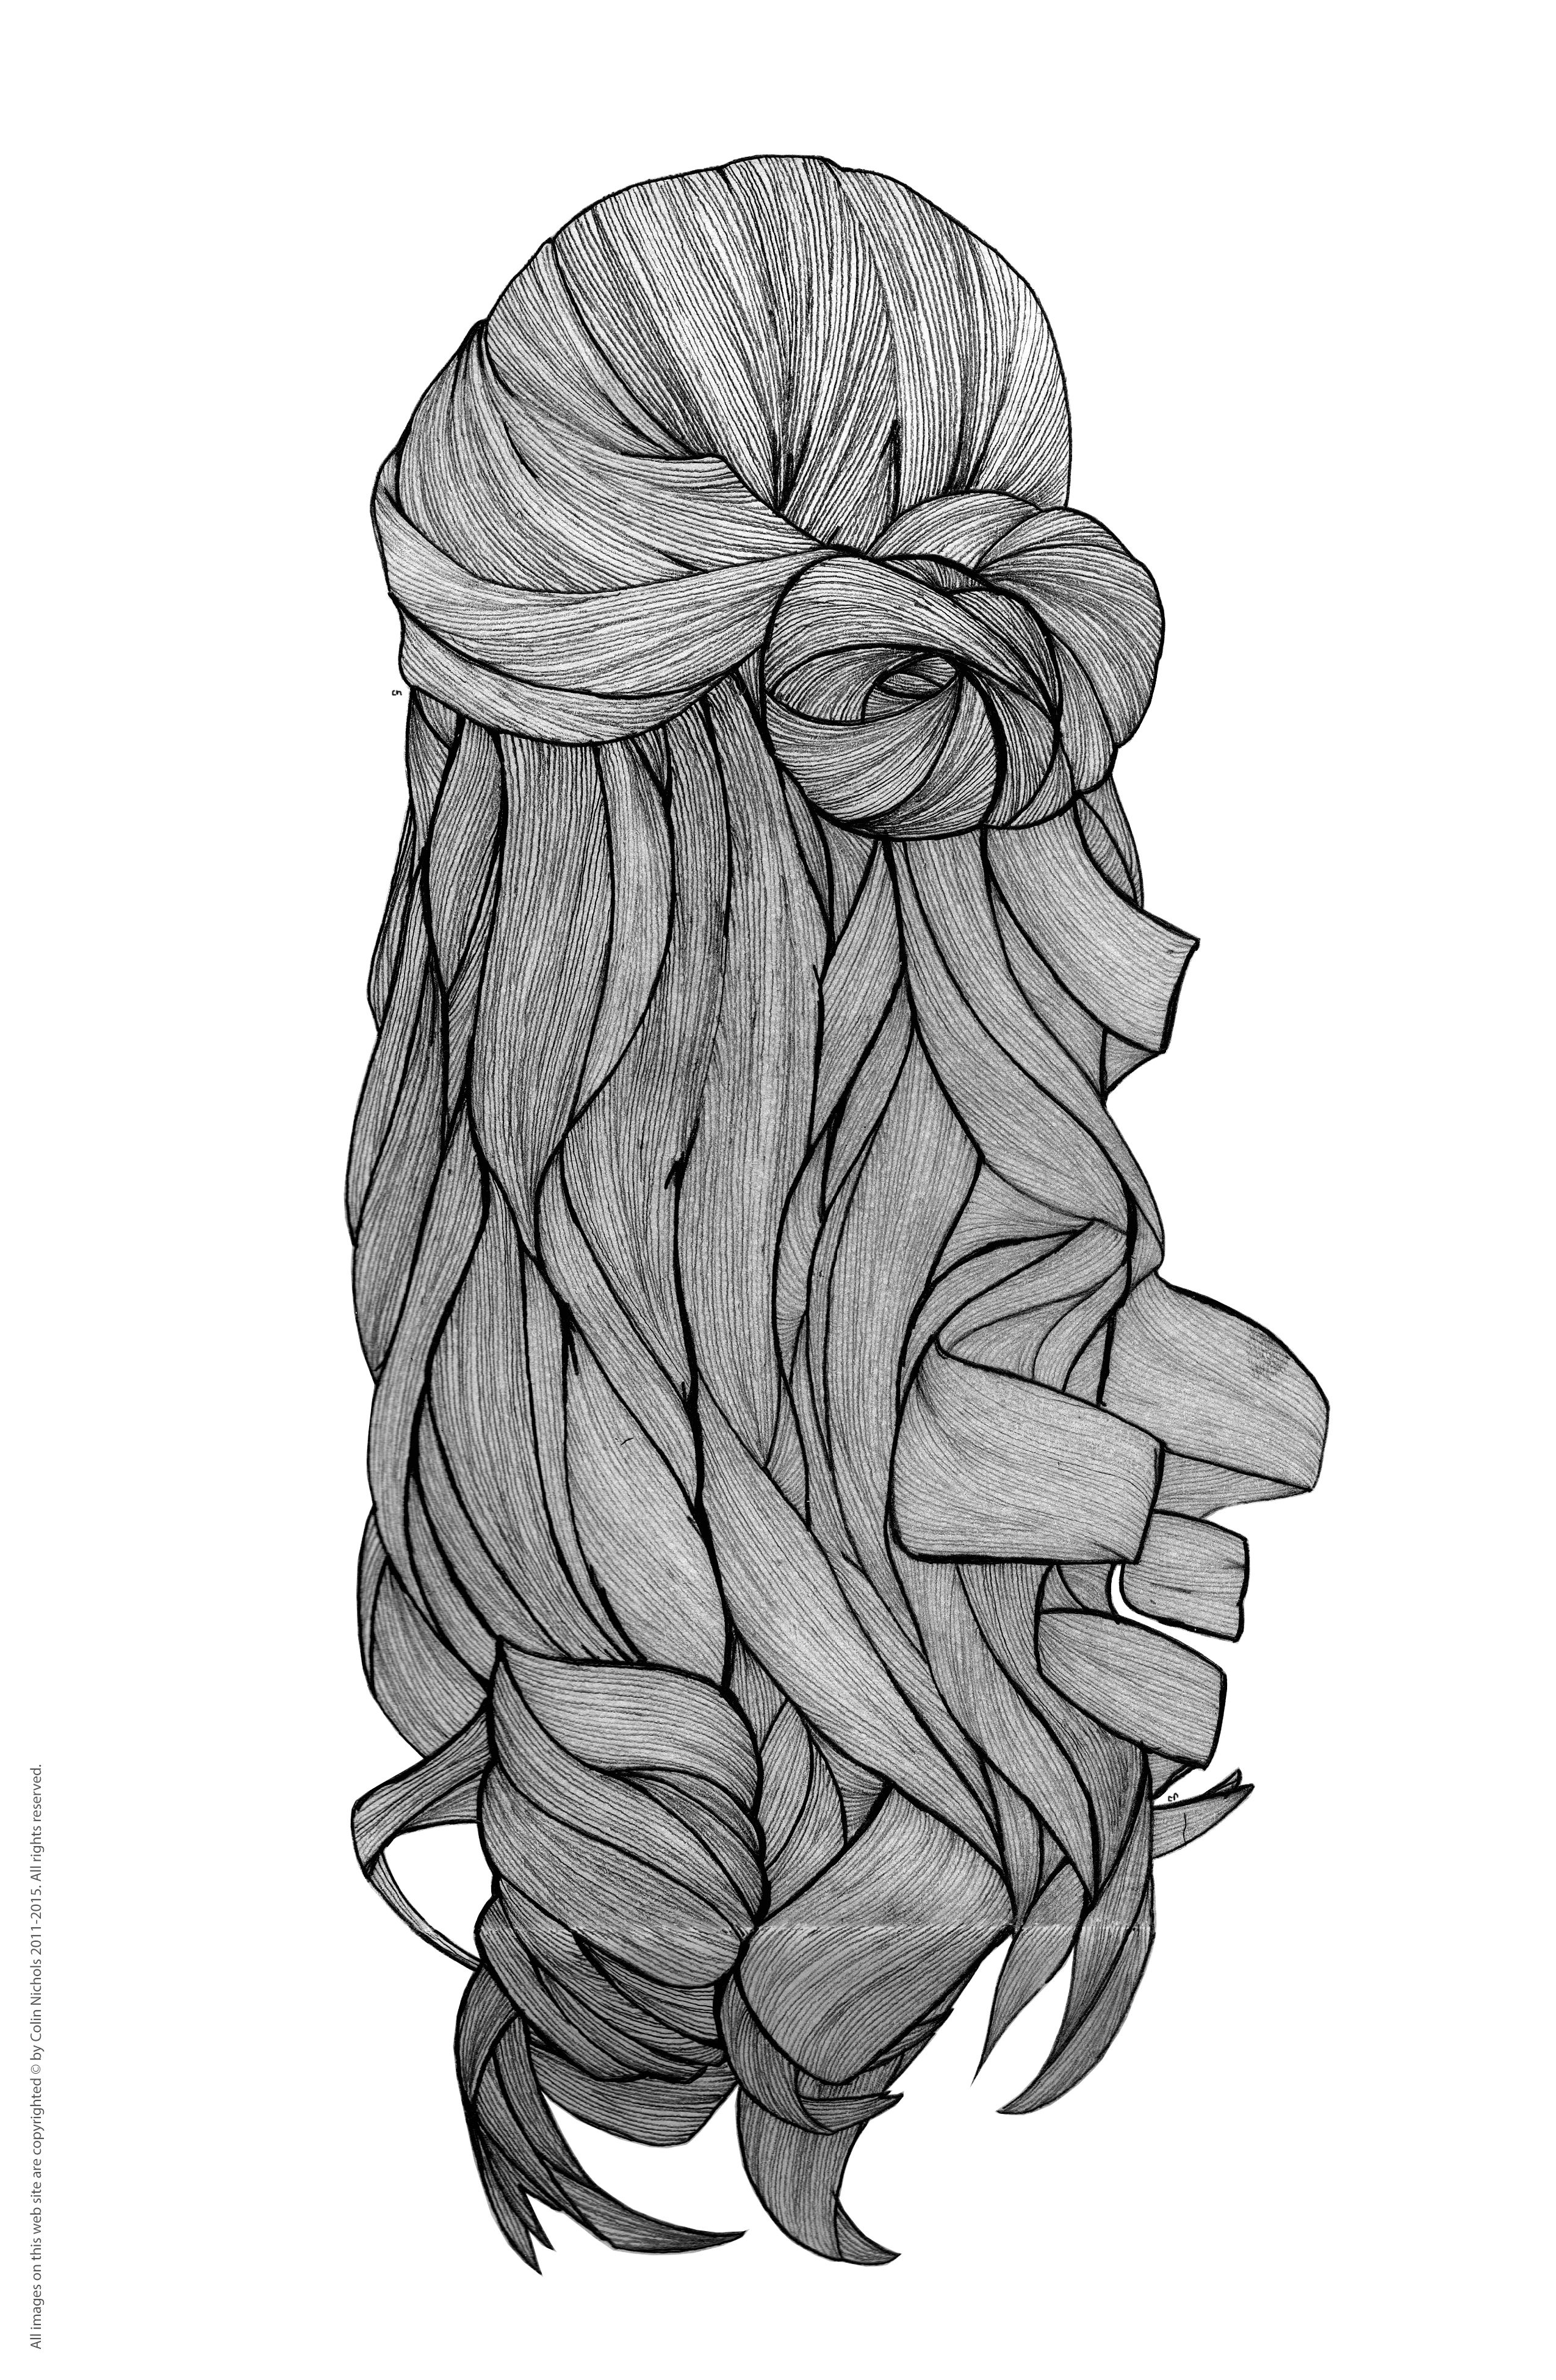 Long Hair New Piece Hair Hairstyling Fashion Culture Line Lineart Linework Art Illustration F Hair Illustration How To Draw Hair Long Hair Drawing